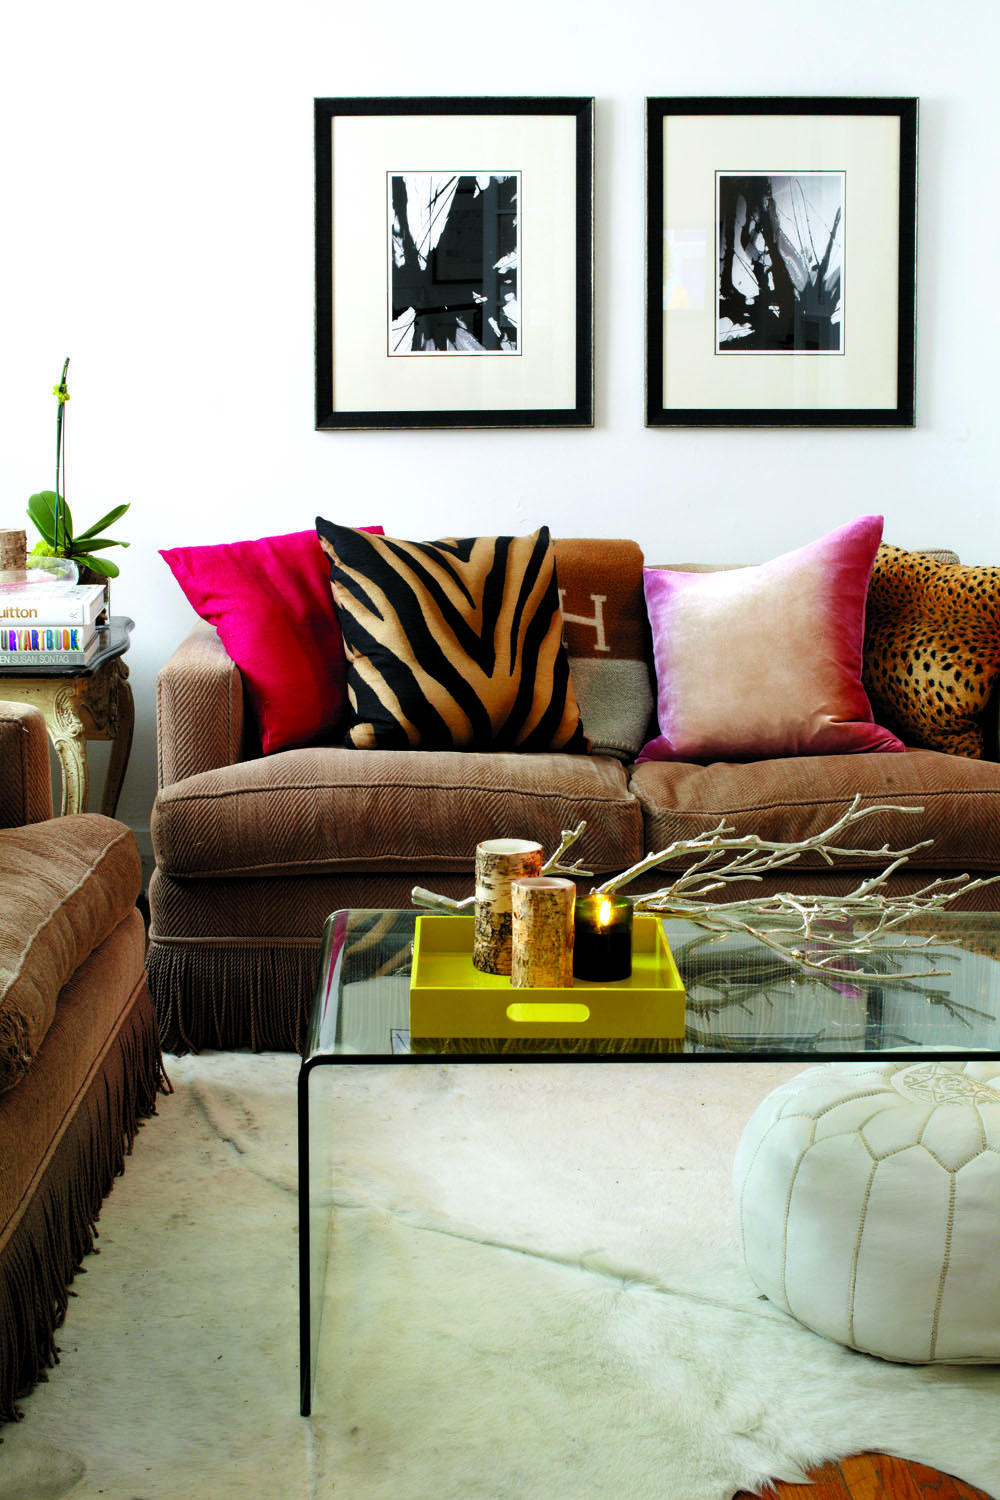 Decorate Small Living Room: How To Decorate A Small Living Space